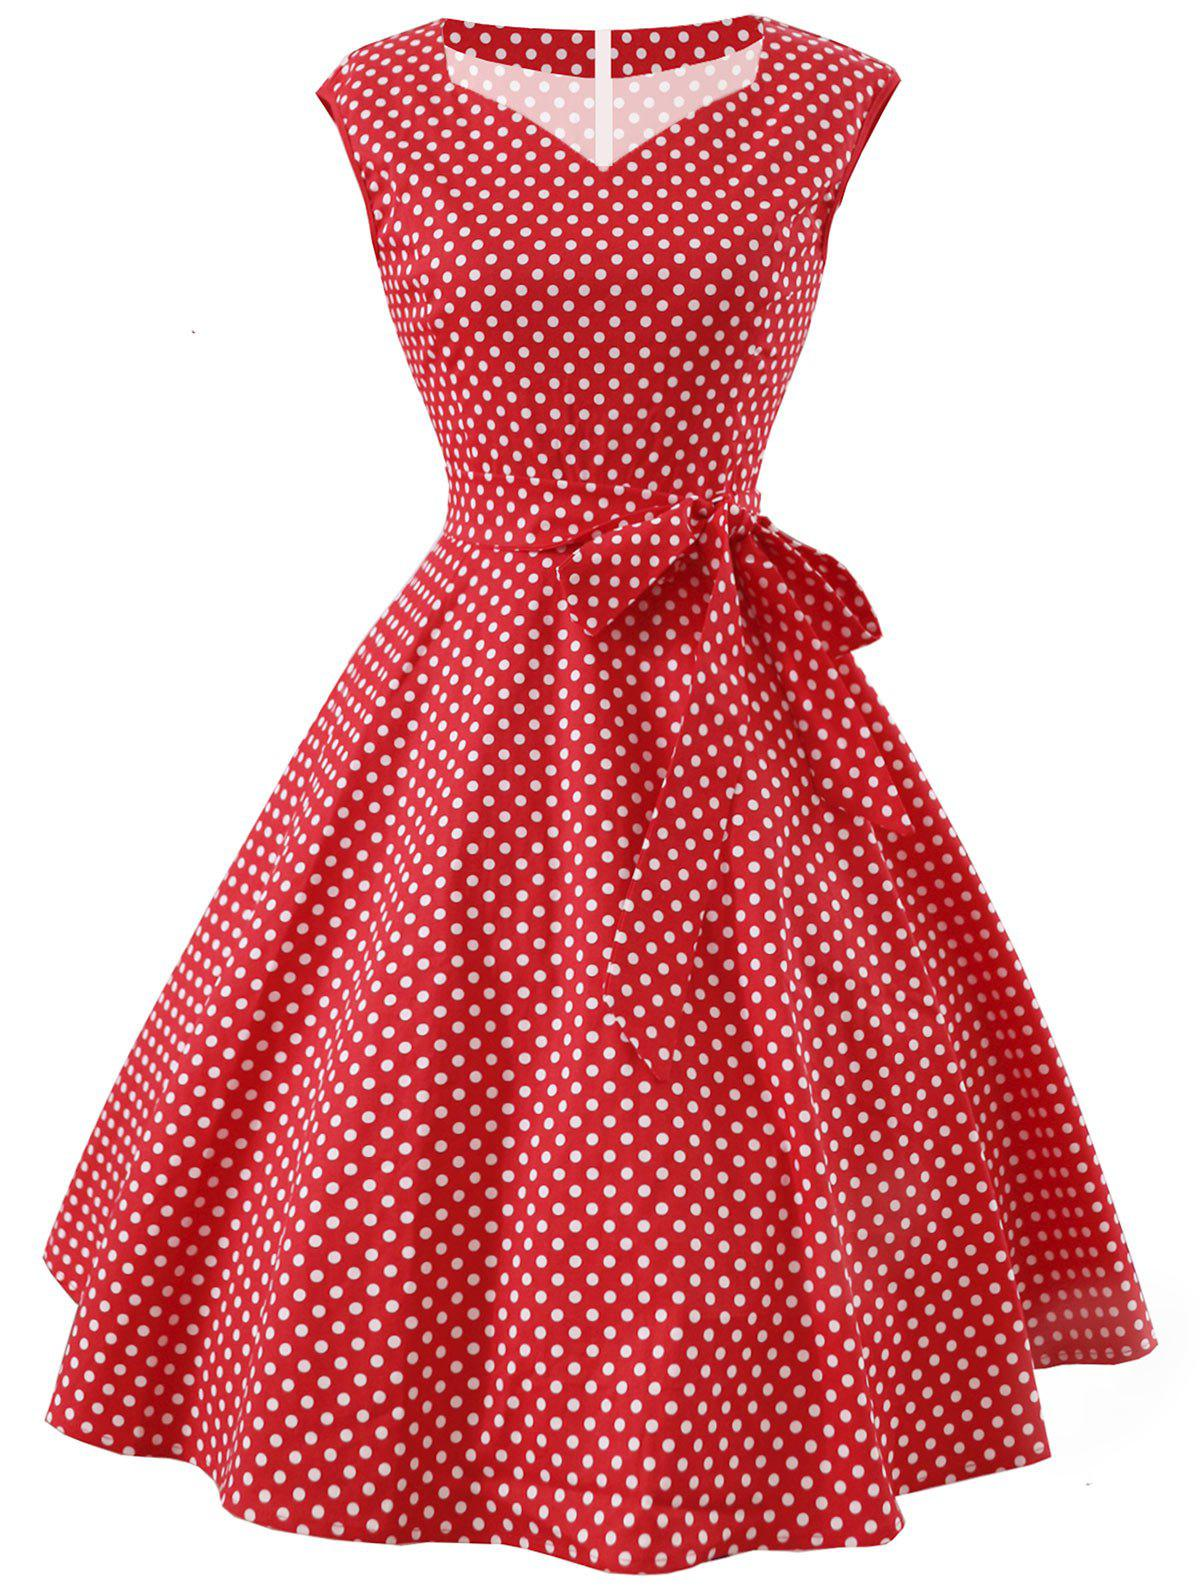 New Polka Dot Sweetheart Party Dress